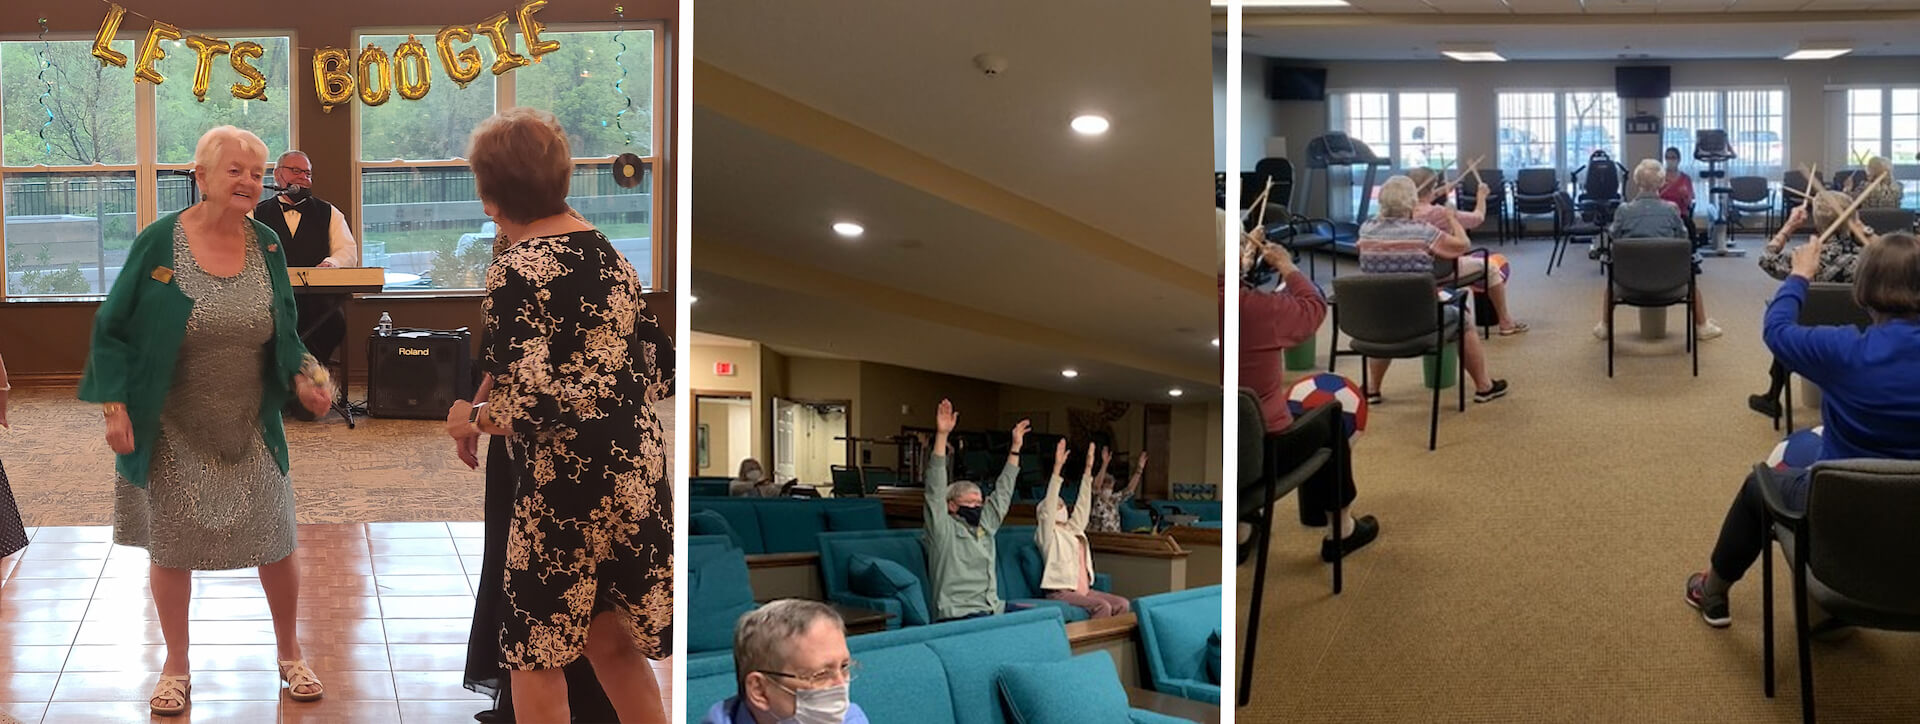 Evergreen Crossings (South Windsor, CT) declared it was time to boogie and treated our seniors to a prom night featuring popular music from decades past. Whether they took to the dance floor or simply clapped their hands or tapped their toes, the movement was a benefit for all.